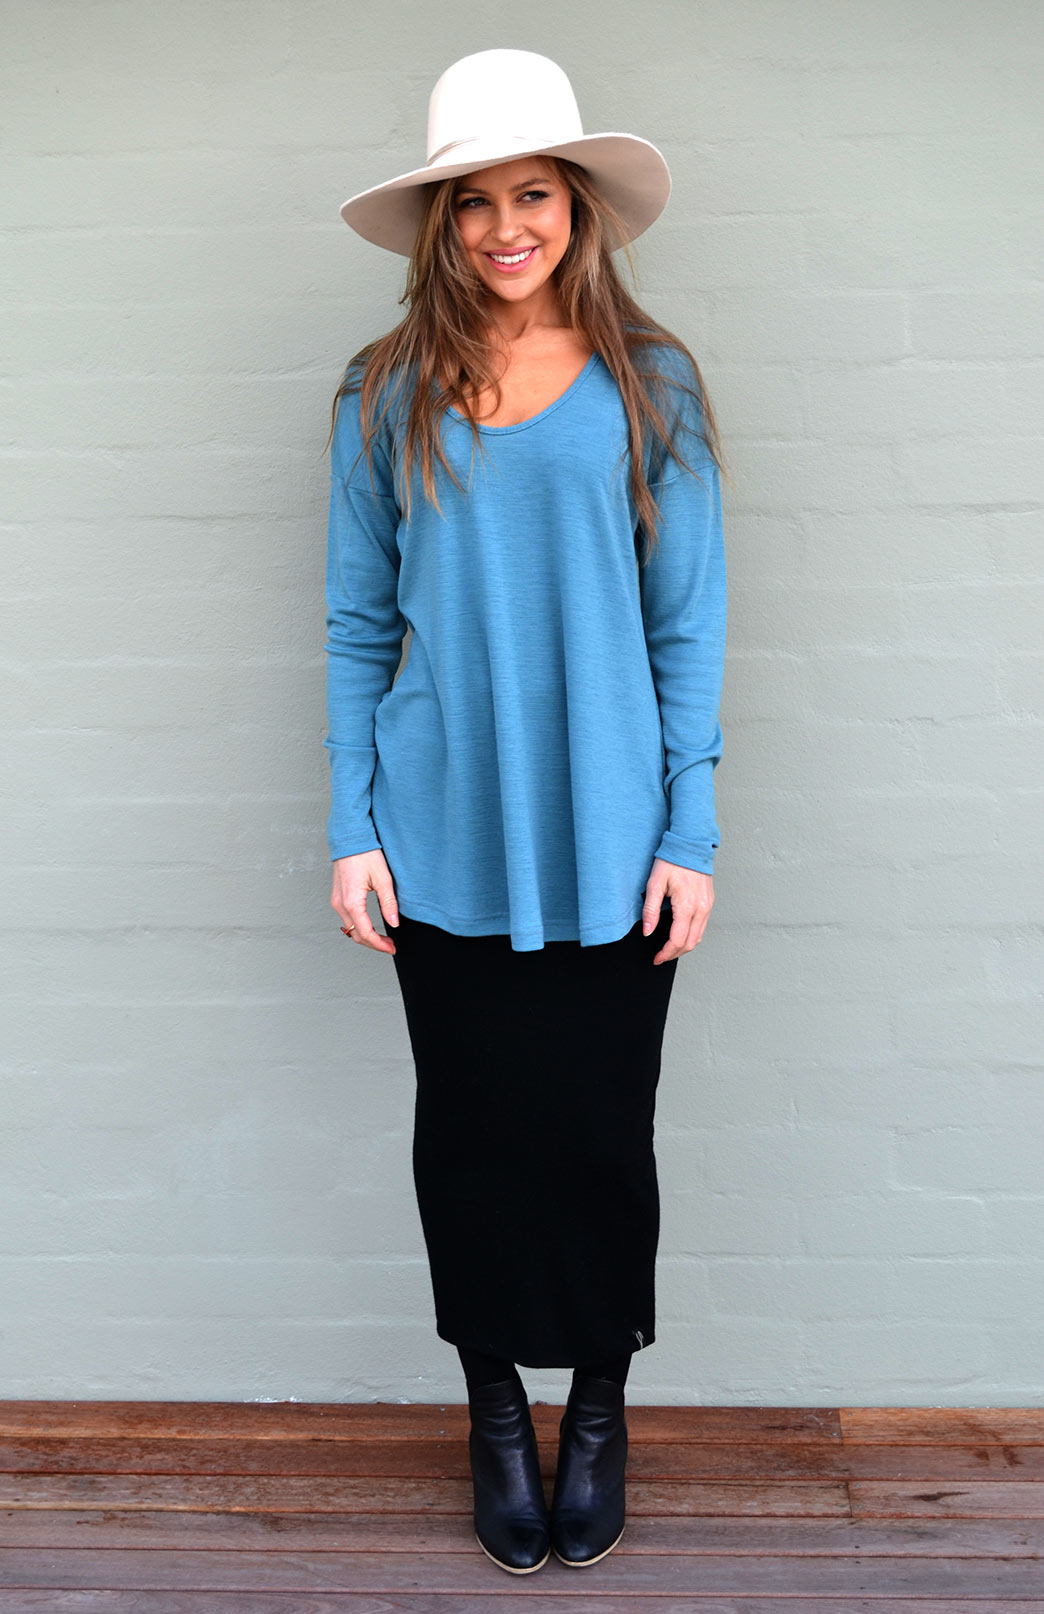 Wave Top - Women's Petrel Relaxed Fit Wool Top with dropped shoulder - Smitten Merino Tasmania Australia